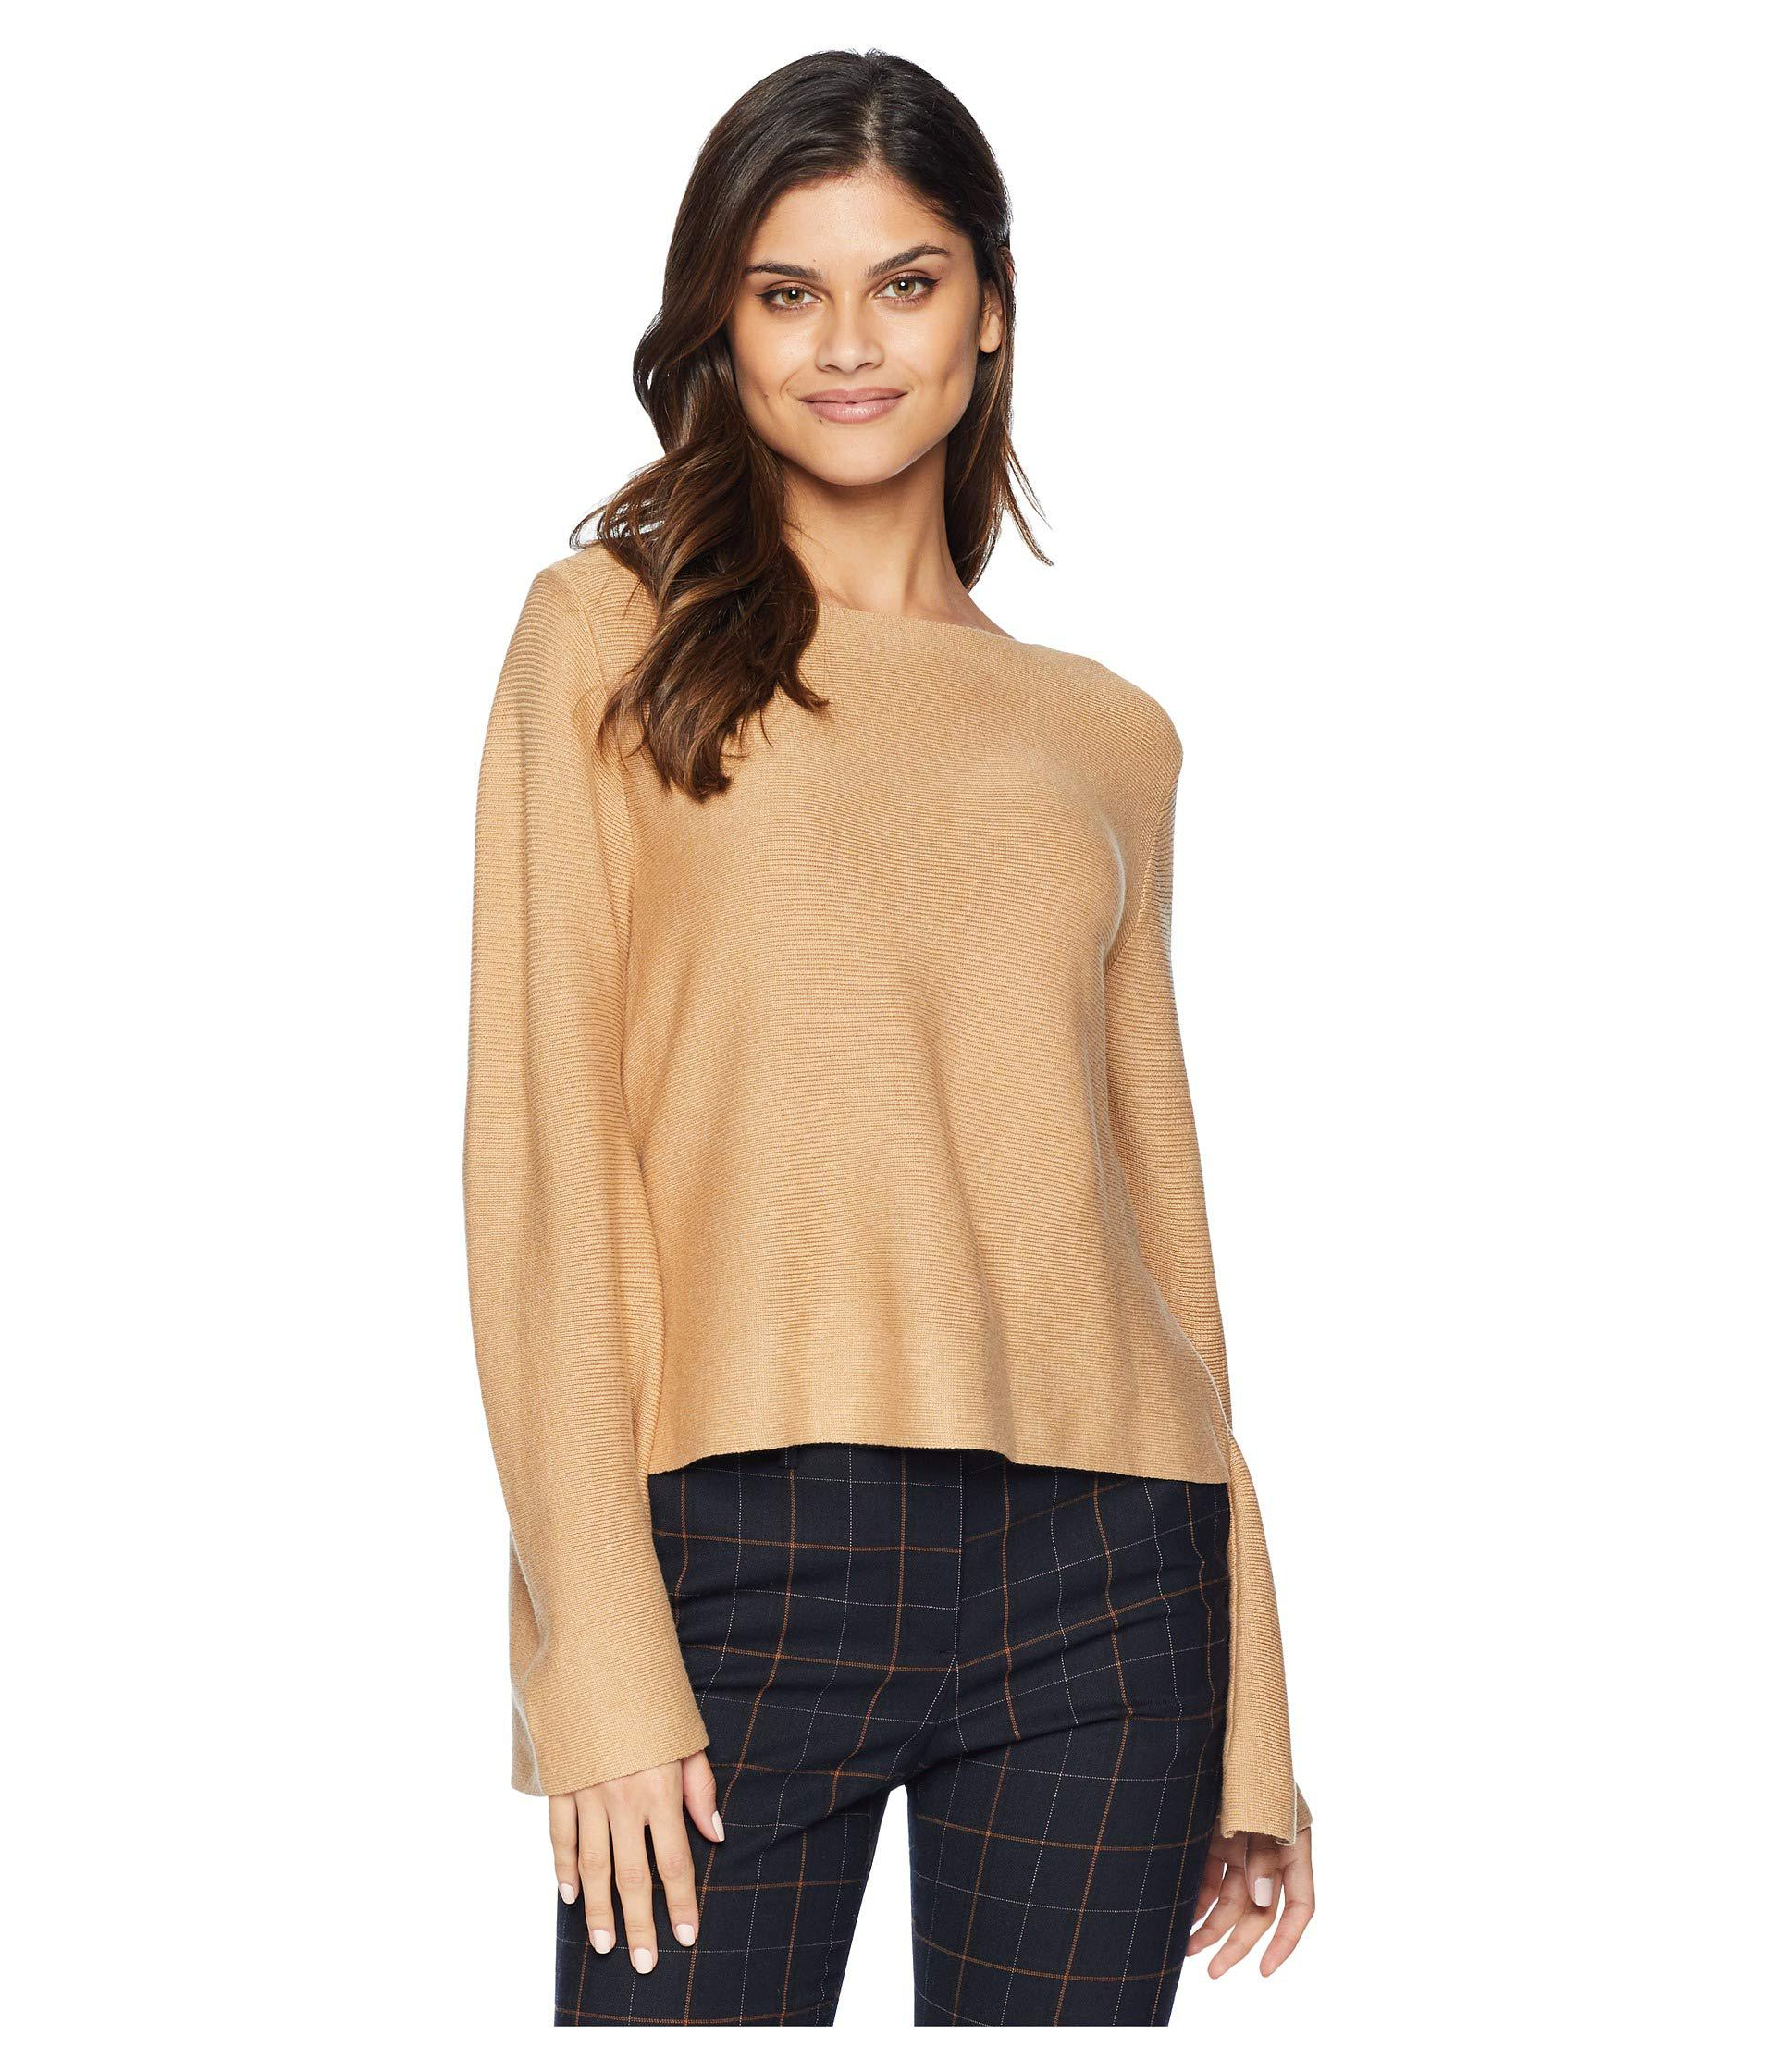 ac9be4924ccfe Lyst - Bishop + Young Savvy Sweater (blue) Women s Sweater in Natural